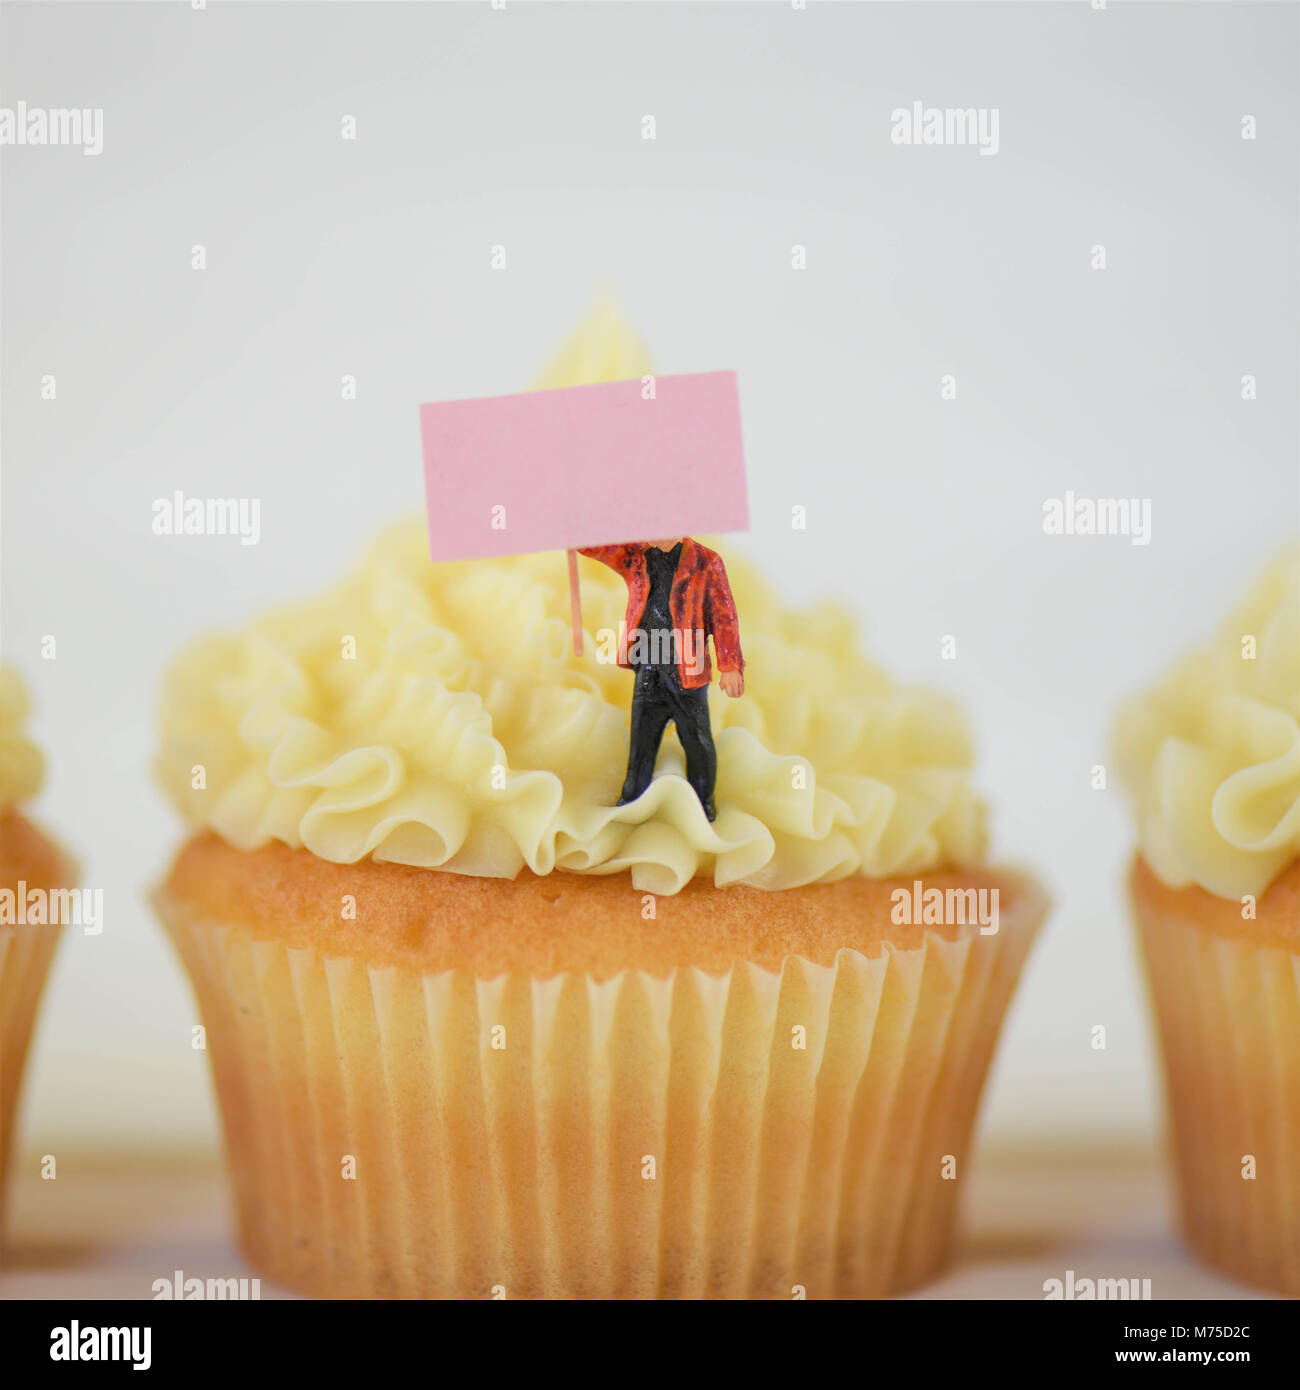 home made cakes with miniature person holding a blank sign for note - Stock Image